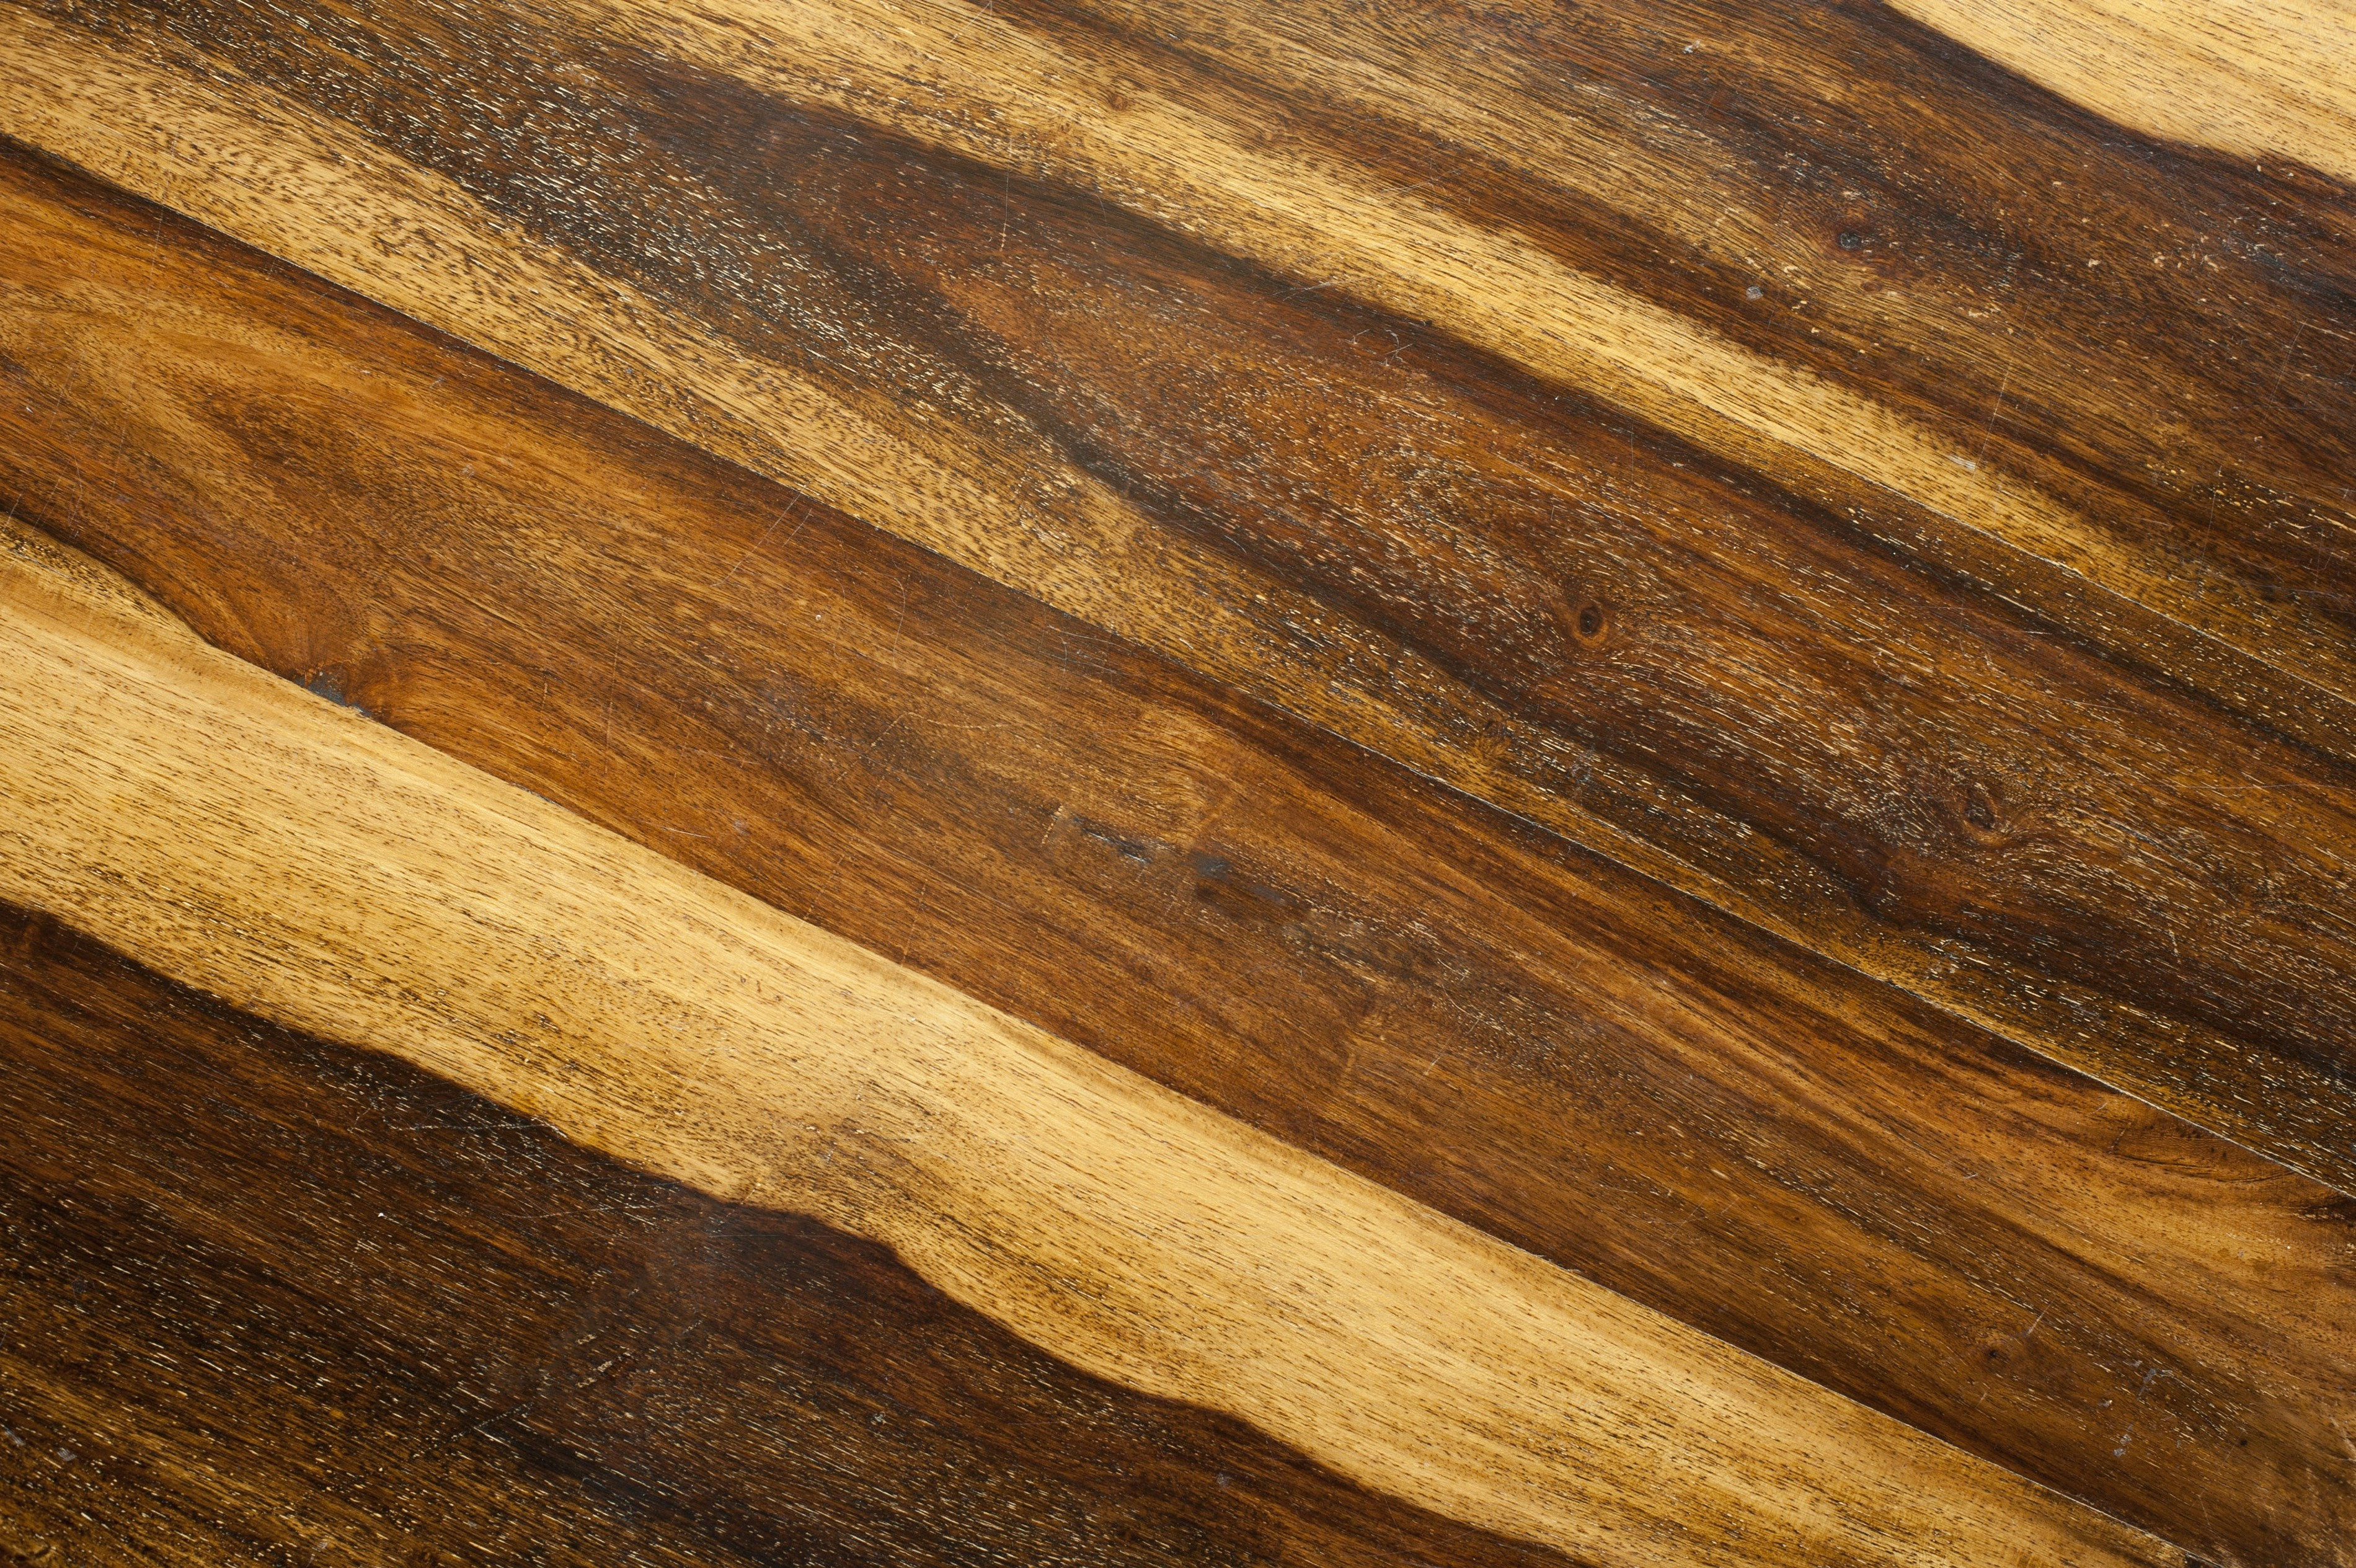 Hardwood Grain Free Backgrounds And Textures Cr103com